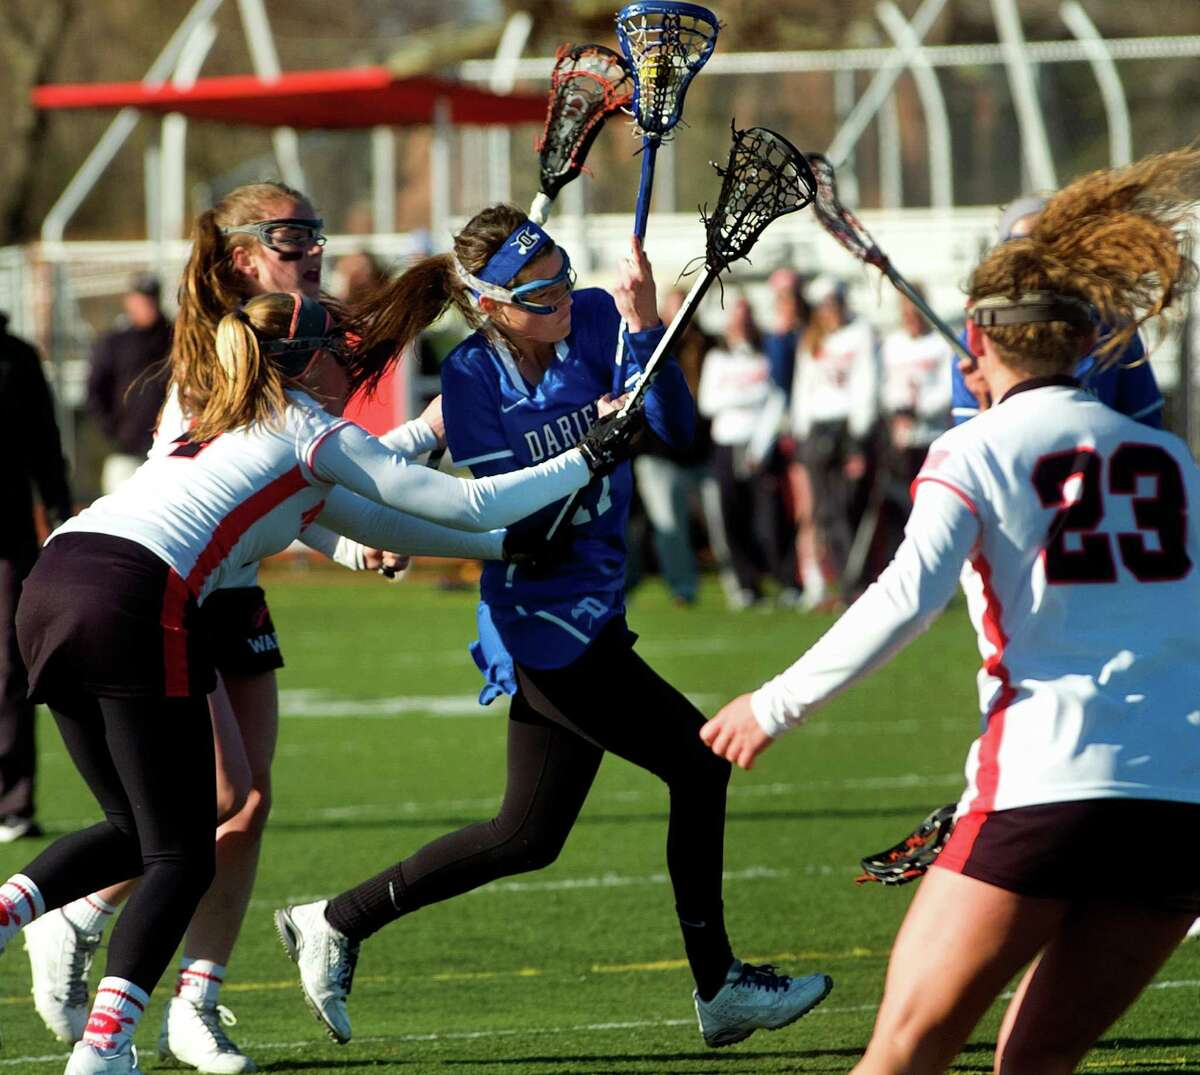 Darien's Chandler Kirby weaves her way to the Fairfield Warde goal to score during girls lacrosse action in Fairfield, Conn., on Tuesday Apr. 5, 2016.